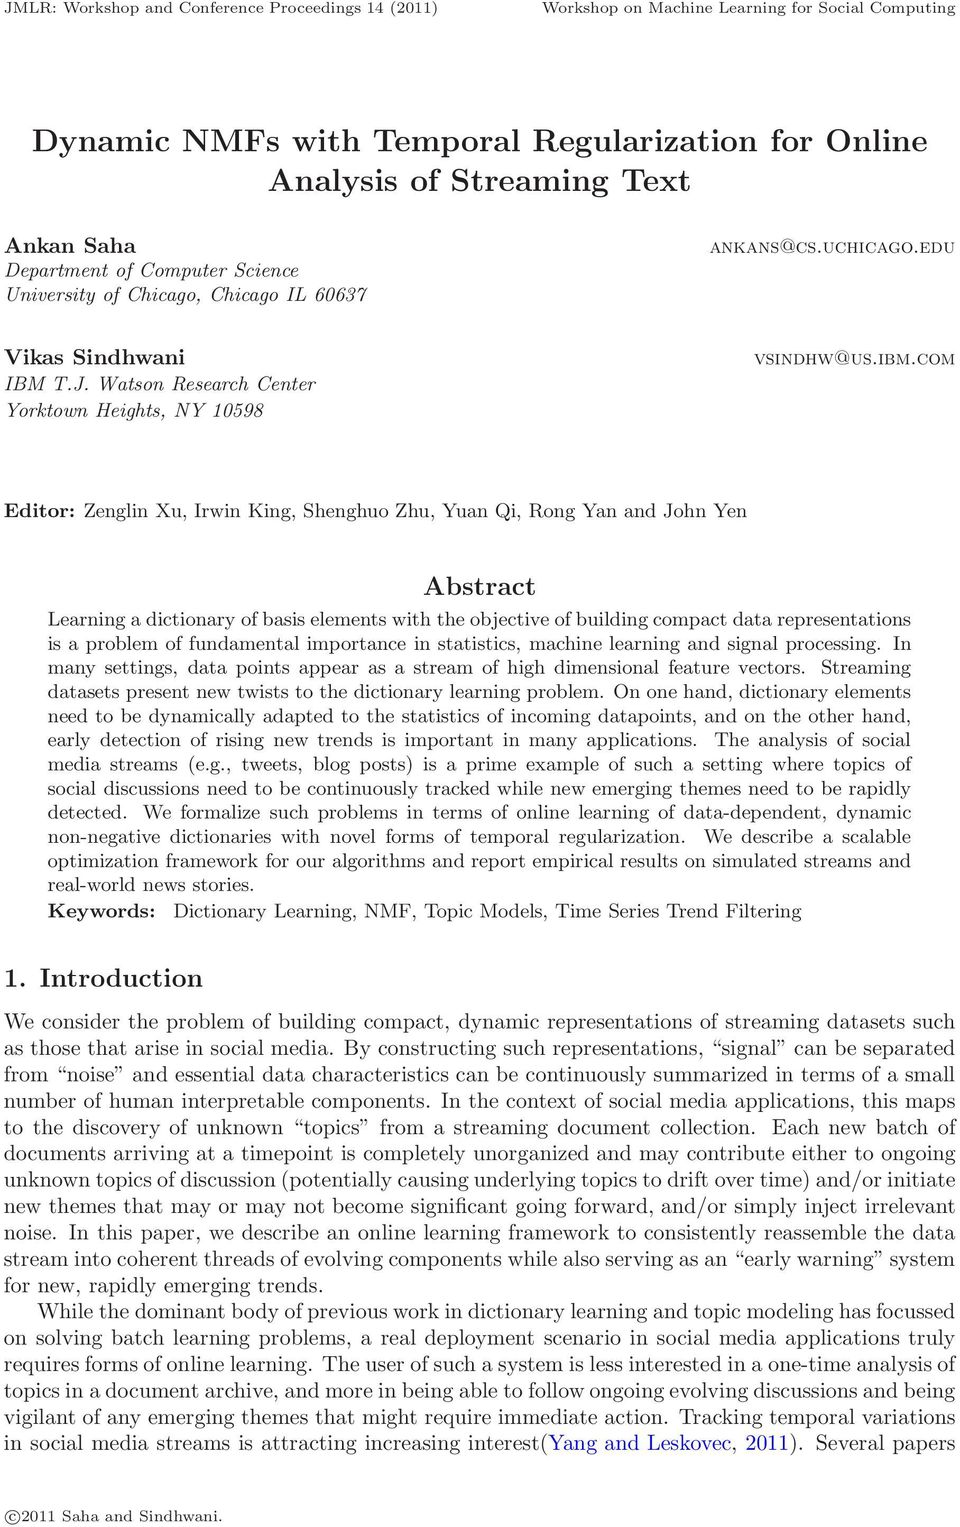 com Editor: Zenglin Xu, Irwin King, Shenghuo Zhu, Yuan Qi, Rong Yan and John Yen Abstract Learning a dictionary of basis elements with the objective of building compact data representations is a